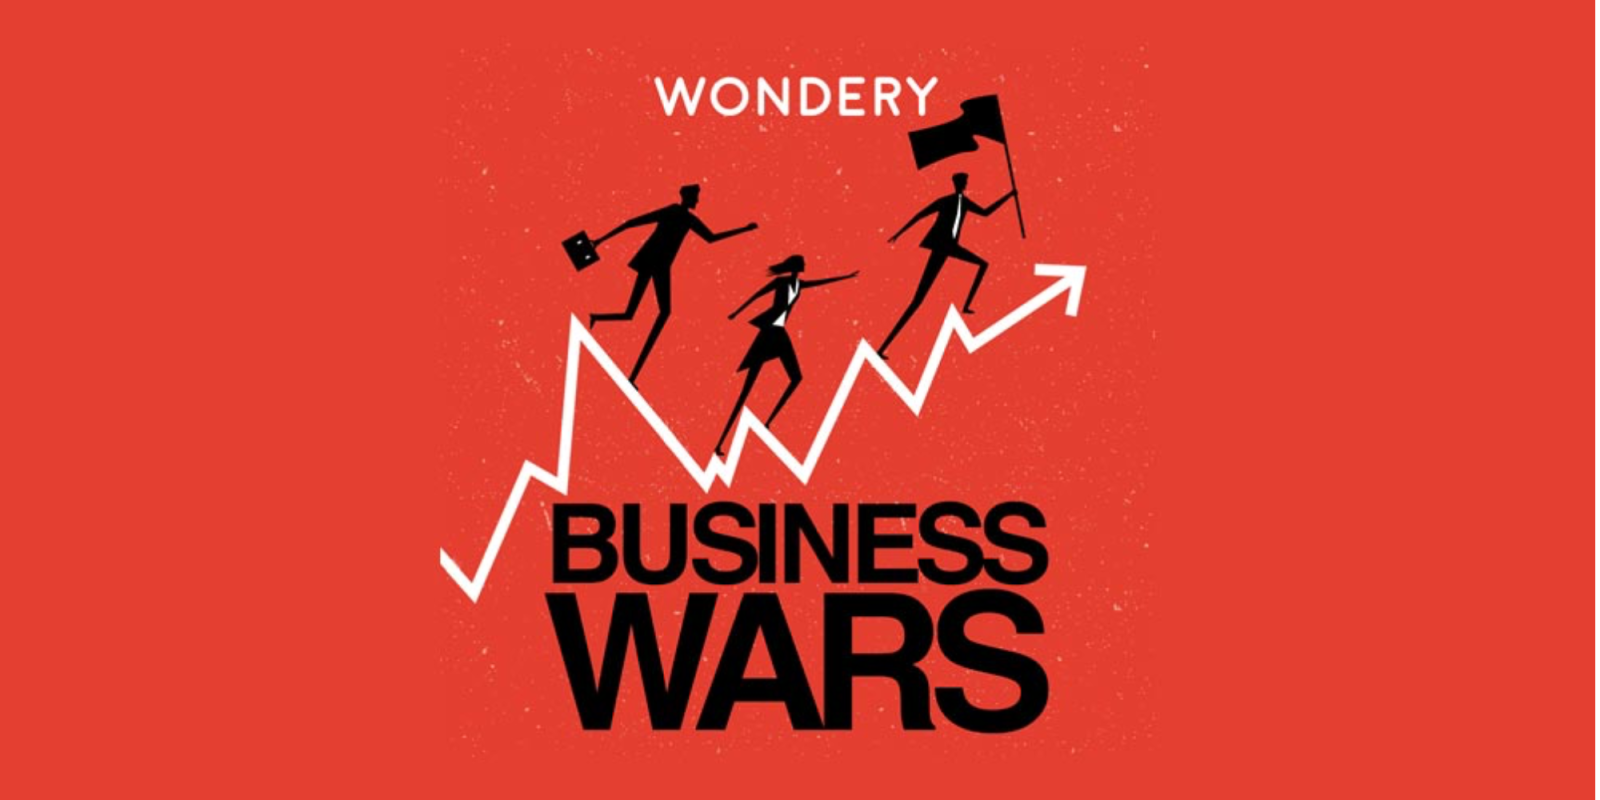 Podcast of The Week: Business Wars by Wondery